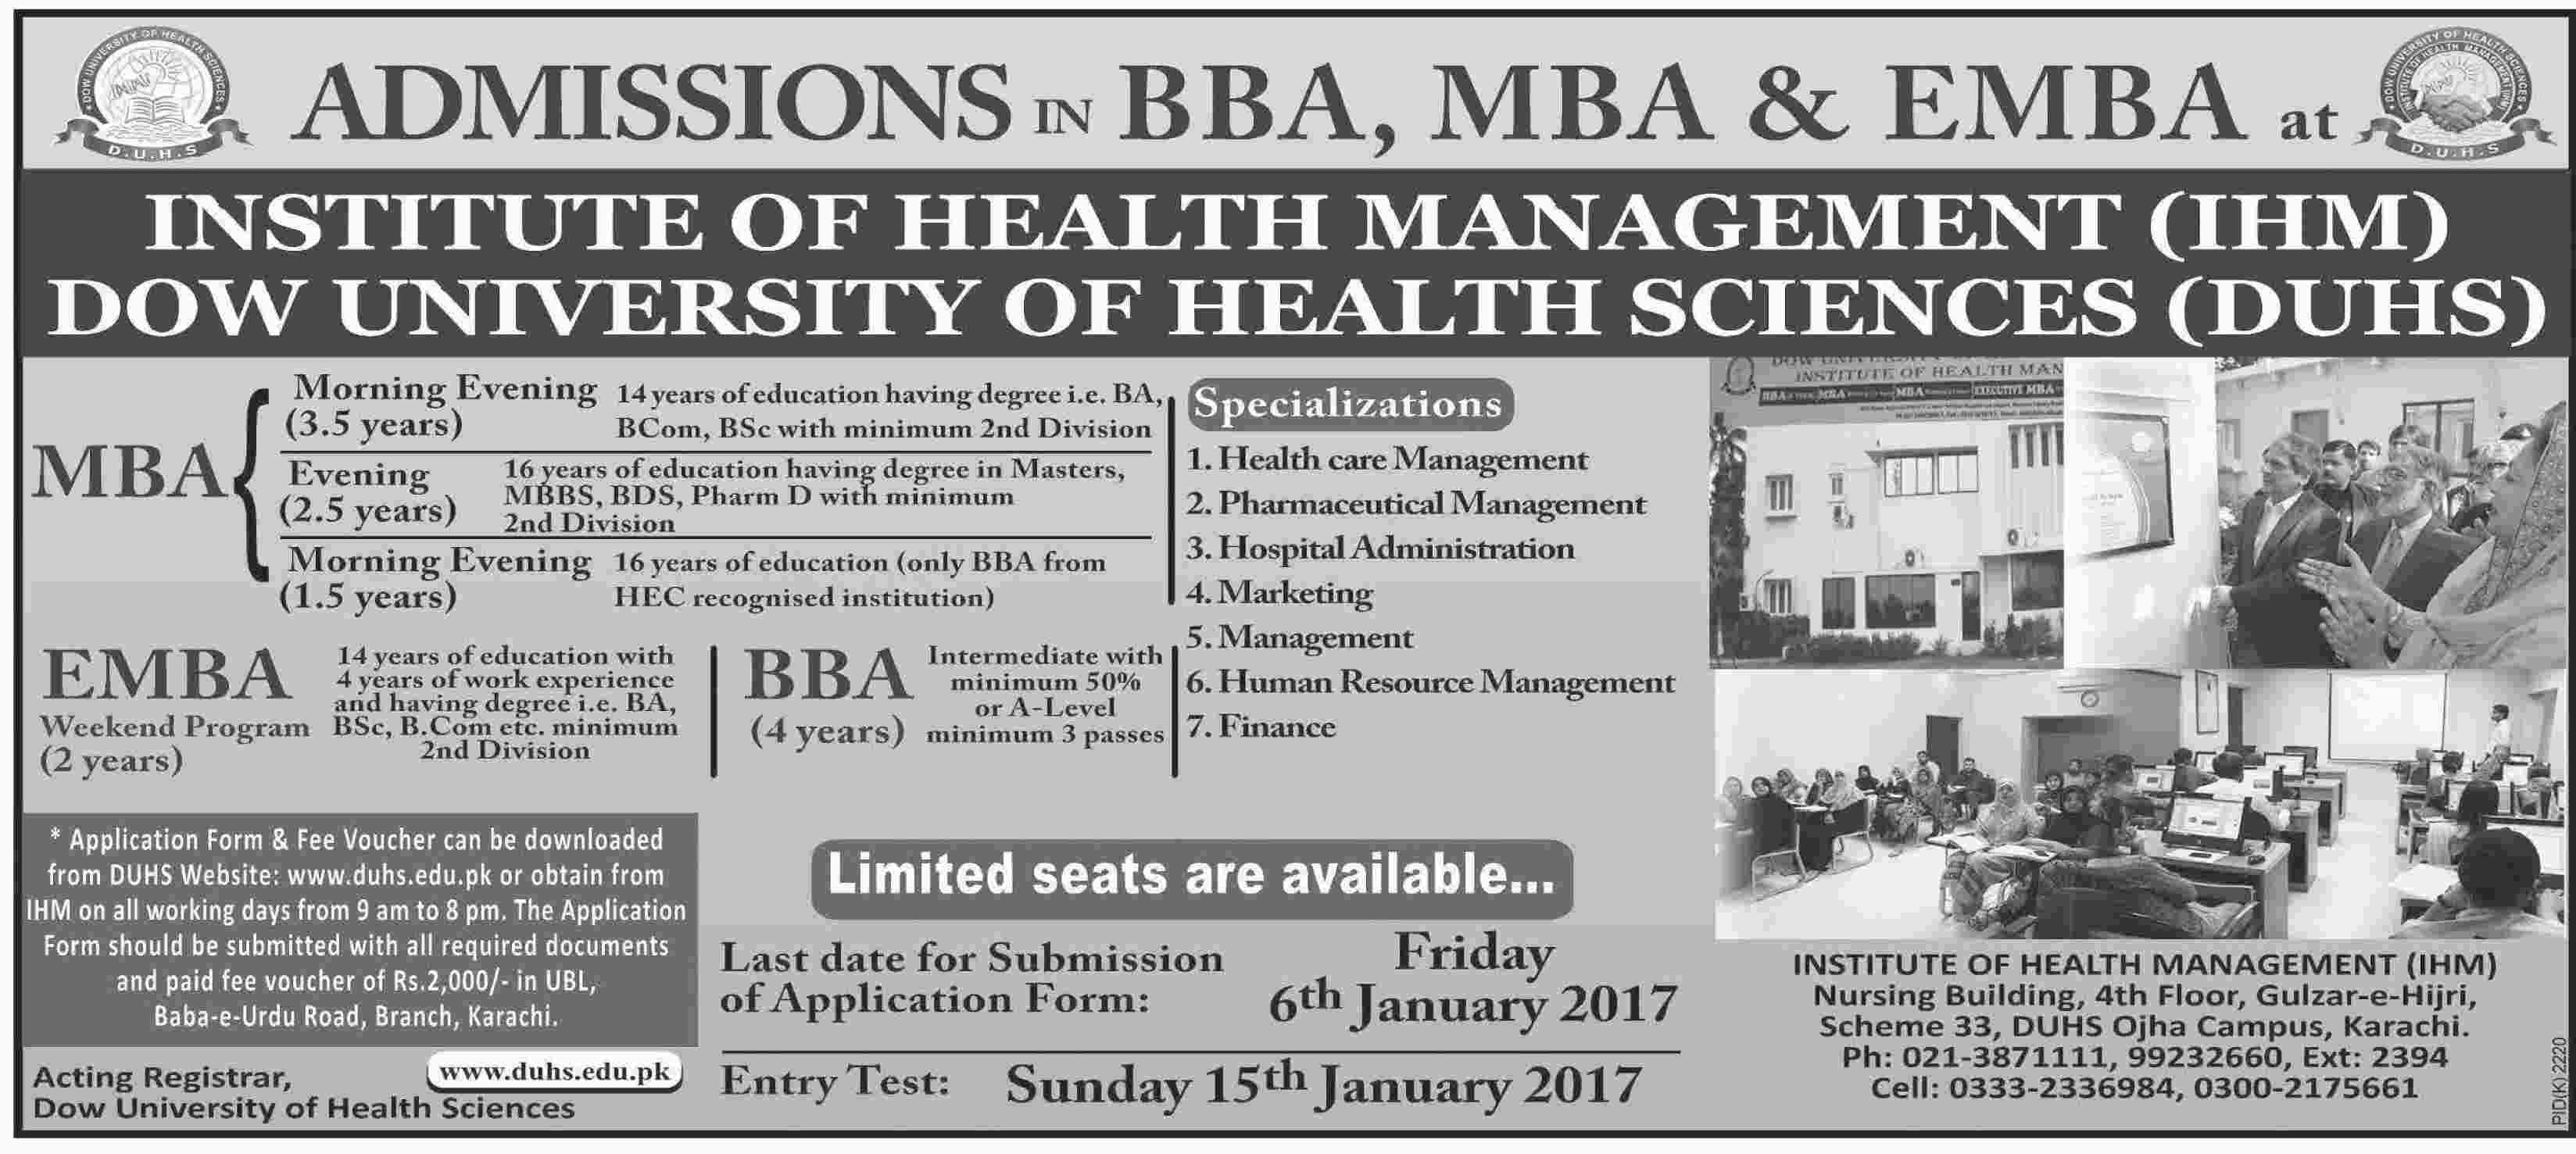 Dow University DUHS BBA, MBA, EMBA Admissions 2017 Form, Last Date